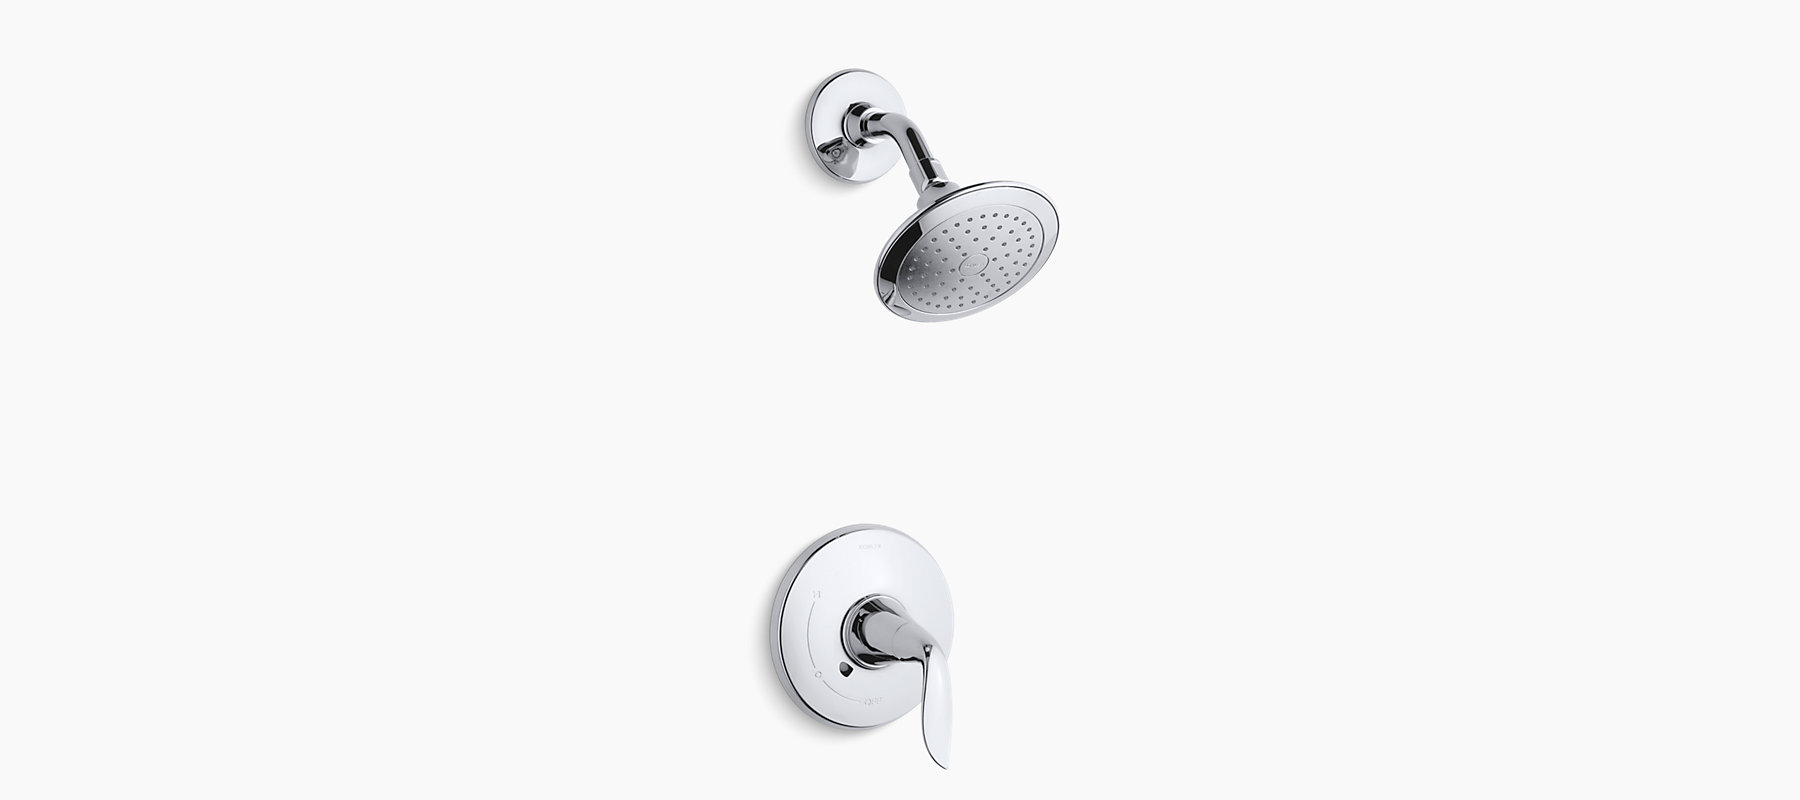 shower design bathroom knobs the ideas repair bath faucet to kohler kitchen on faucets how stylish